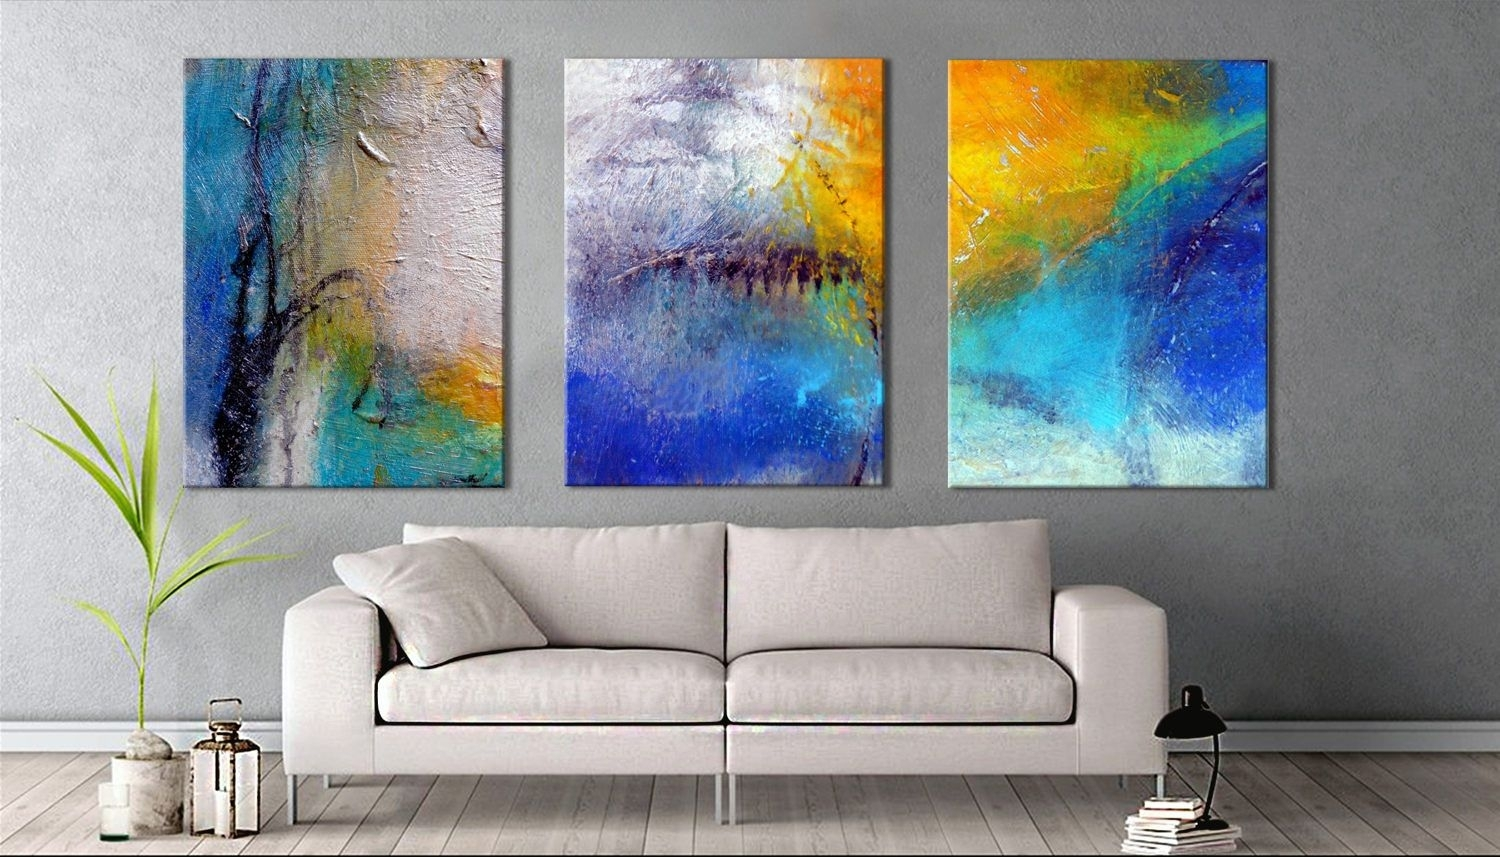 Oversized Wall Art | Triptych Abstract Paintings | Large Canvas Art inside Extra Large Wall Art (Image 14 of 20)